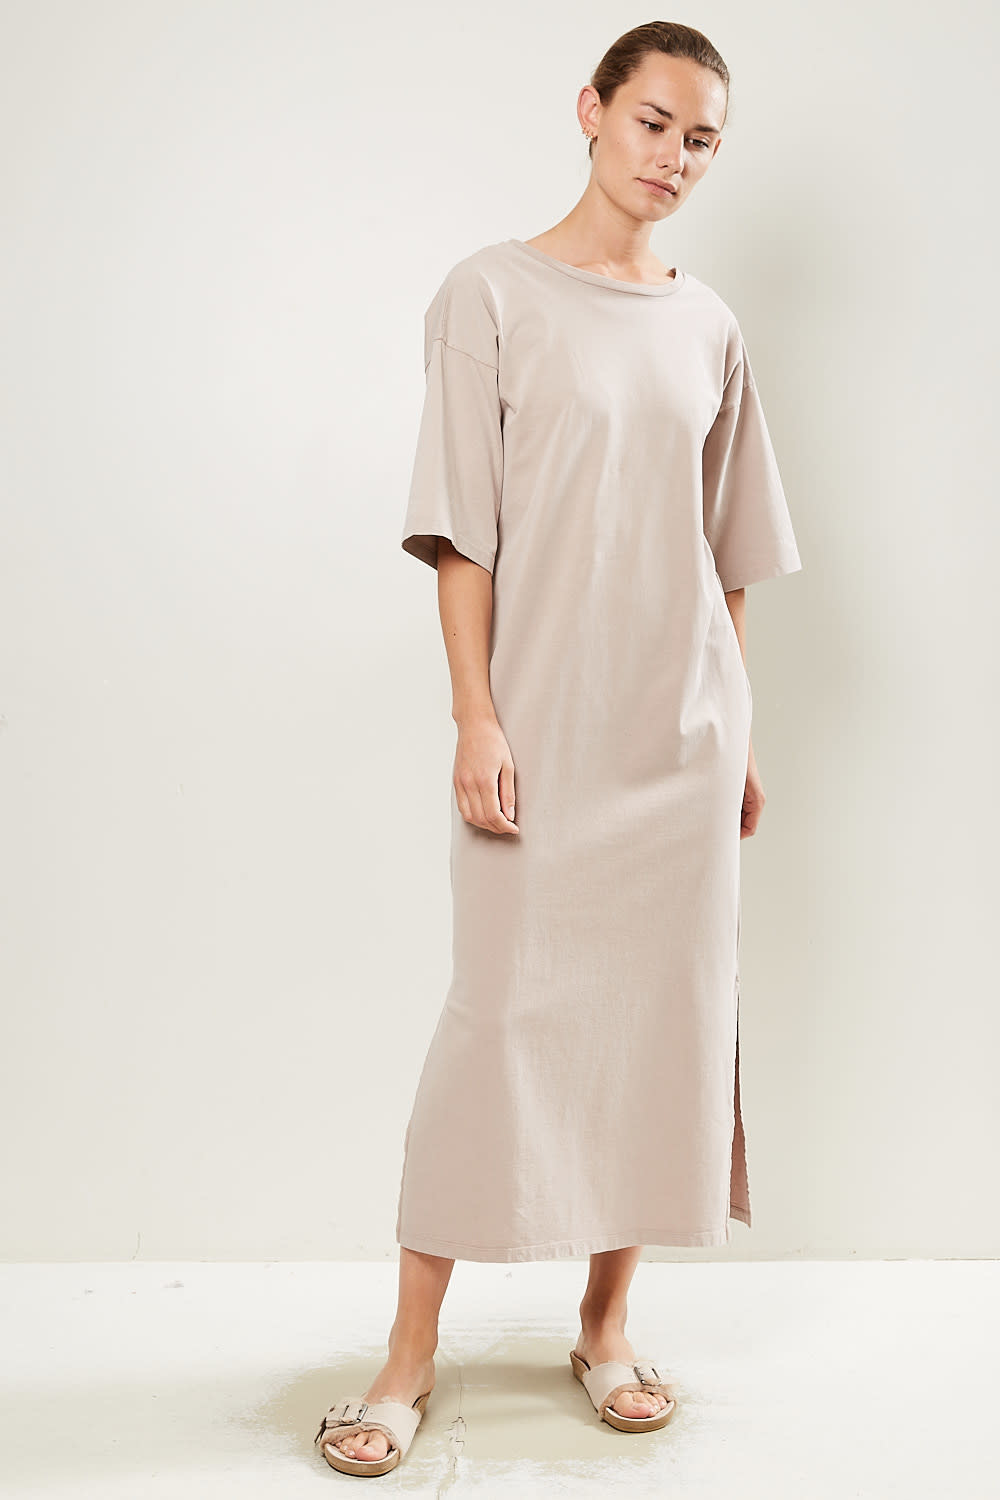 ÂME Casil tee dress